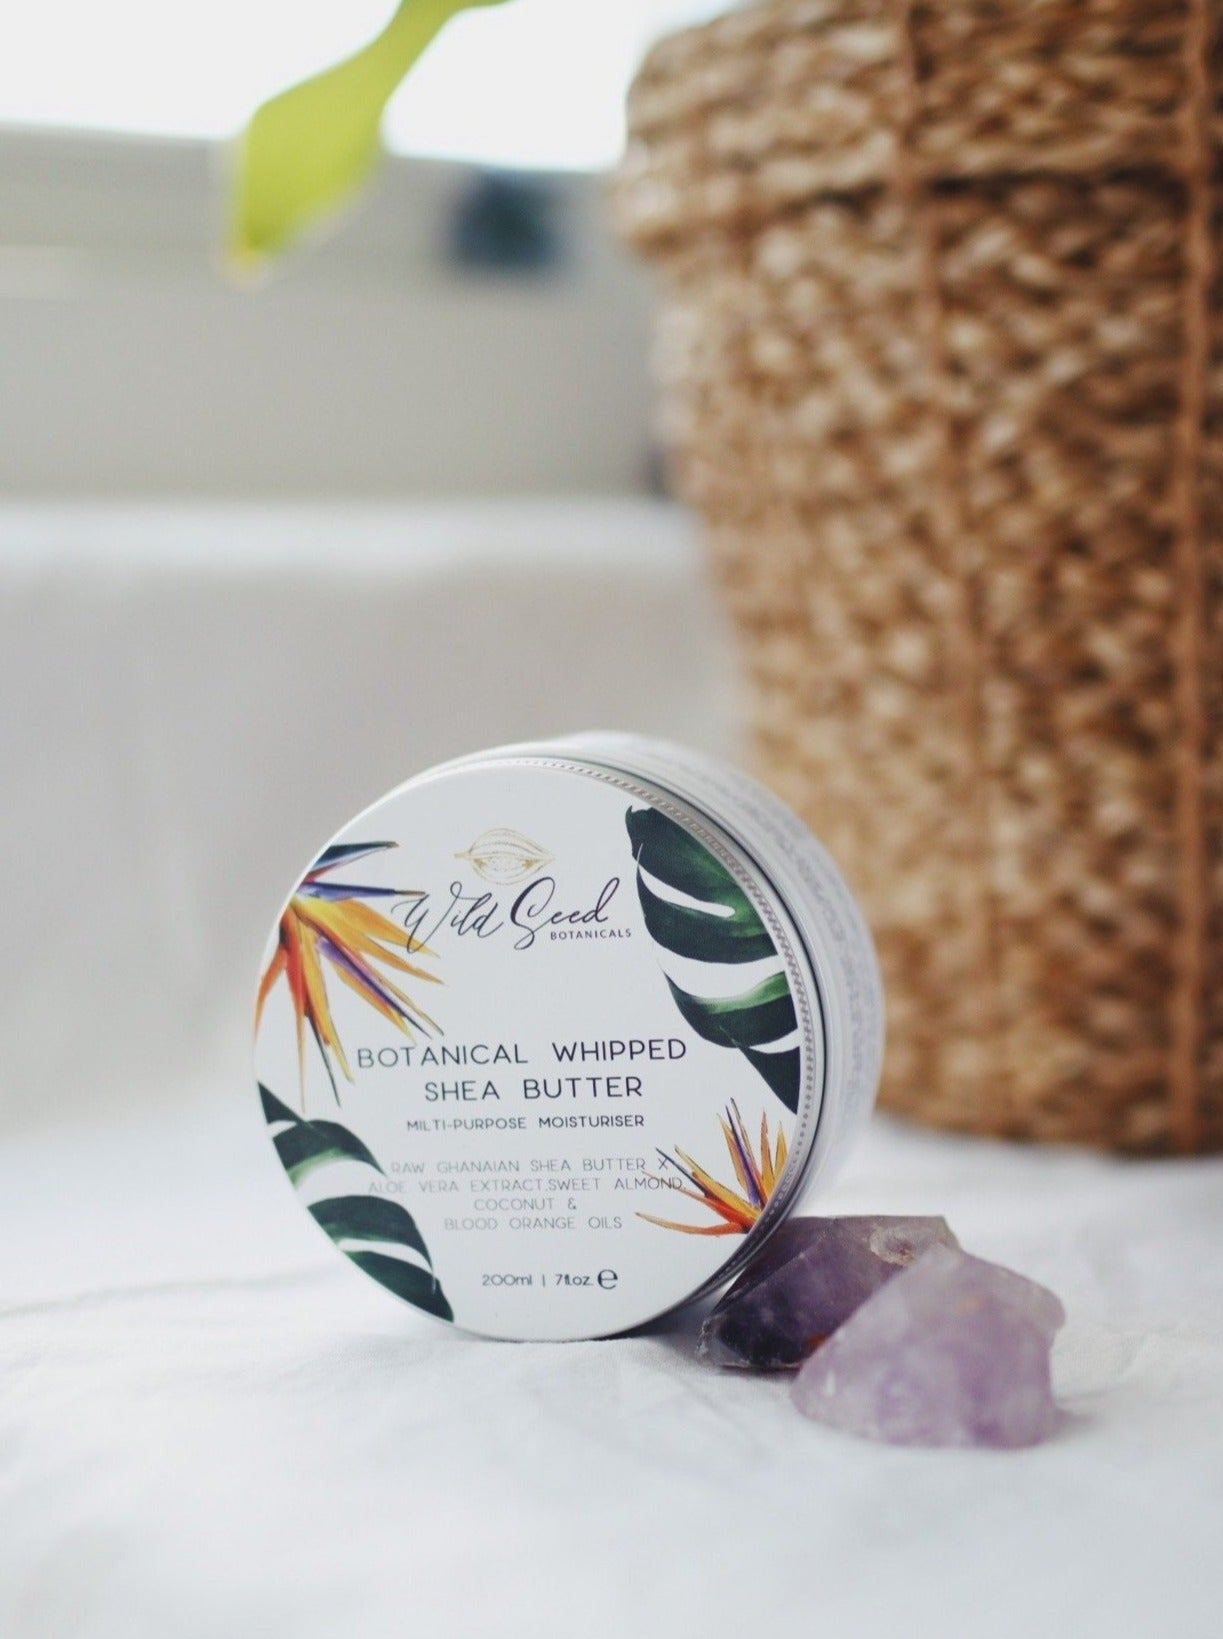 Botanical Whipped Shea Butter - Wild Seed Botanicals